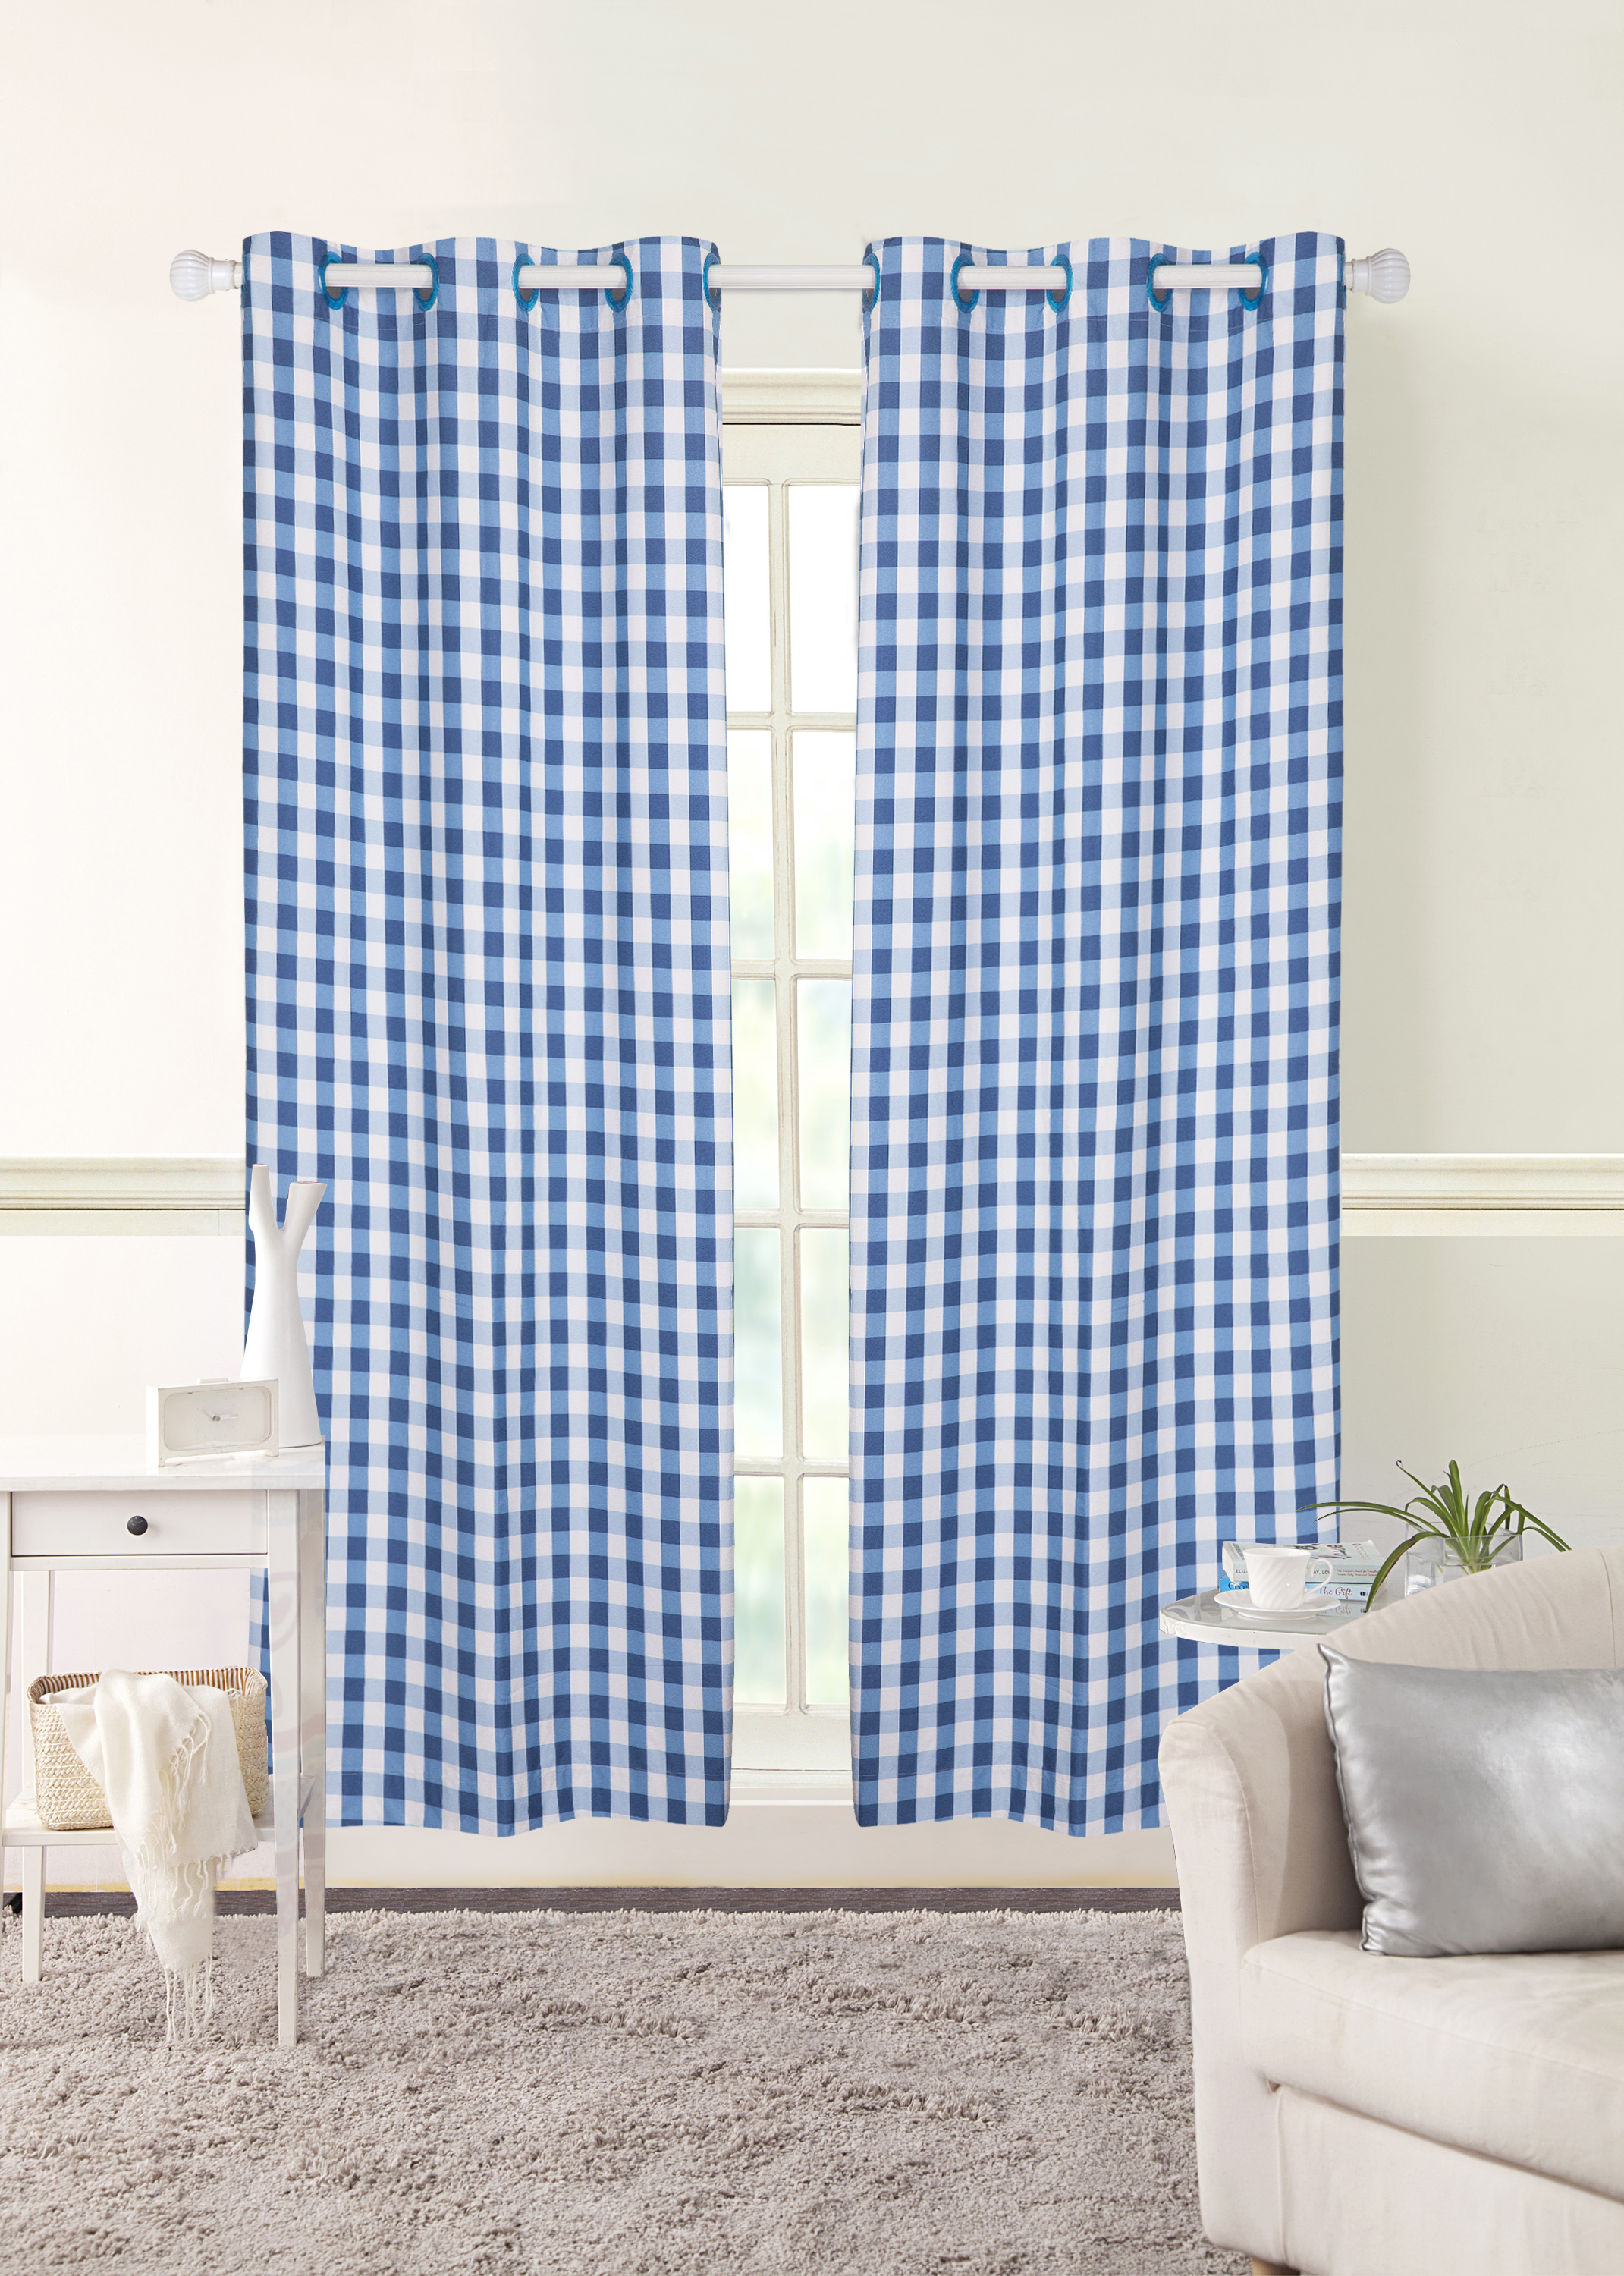 Awesome Mainstays Grommet Room Darkening Gingham Single Curtain Panel. Product  Variants Selector. Blue